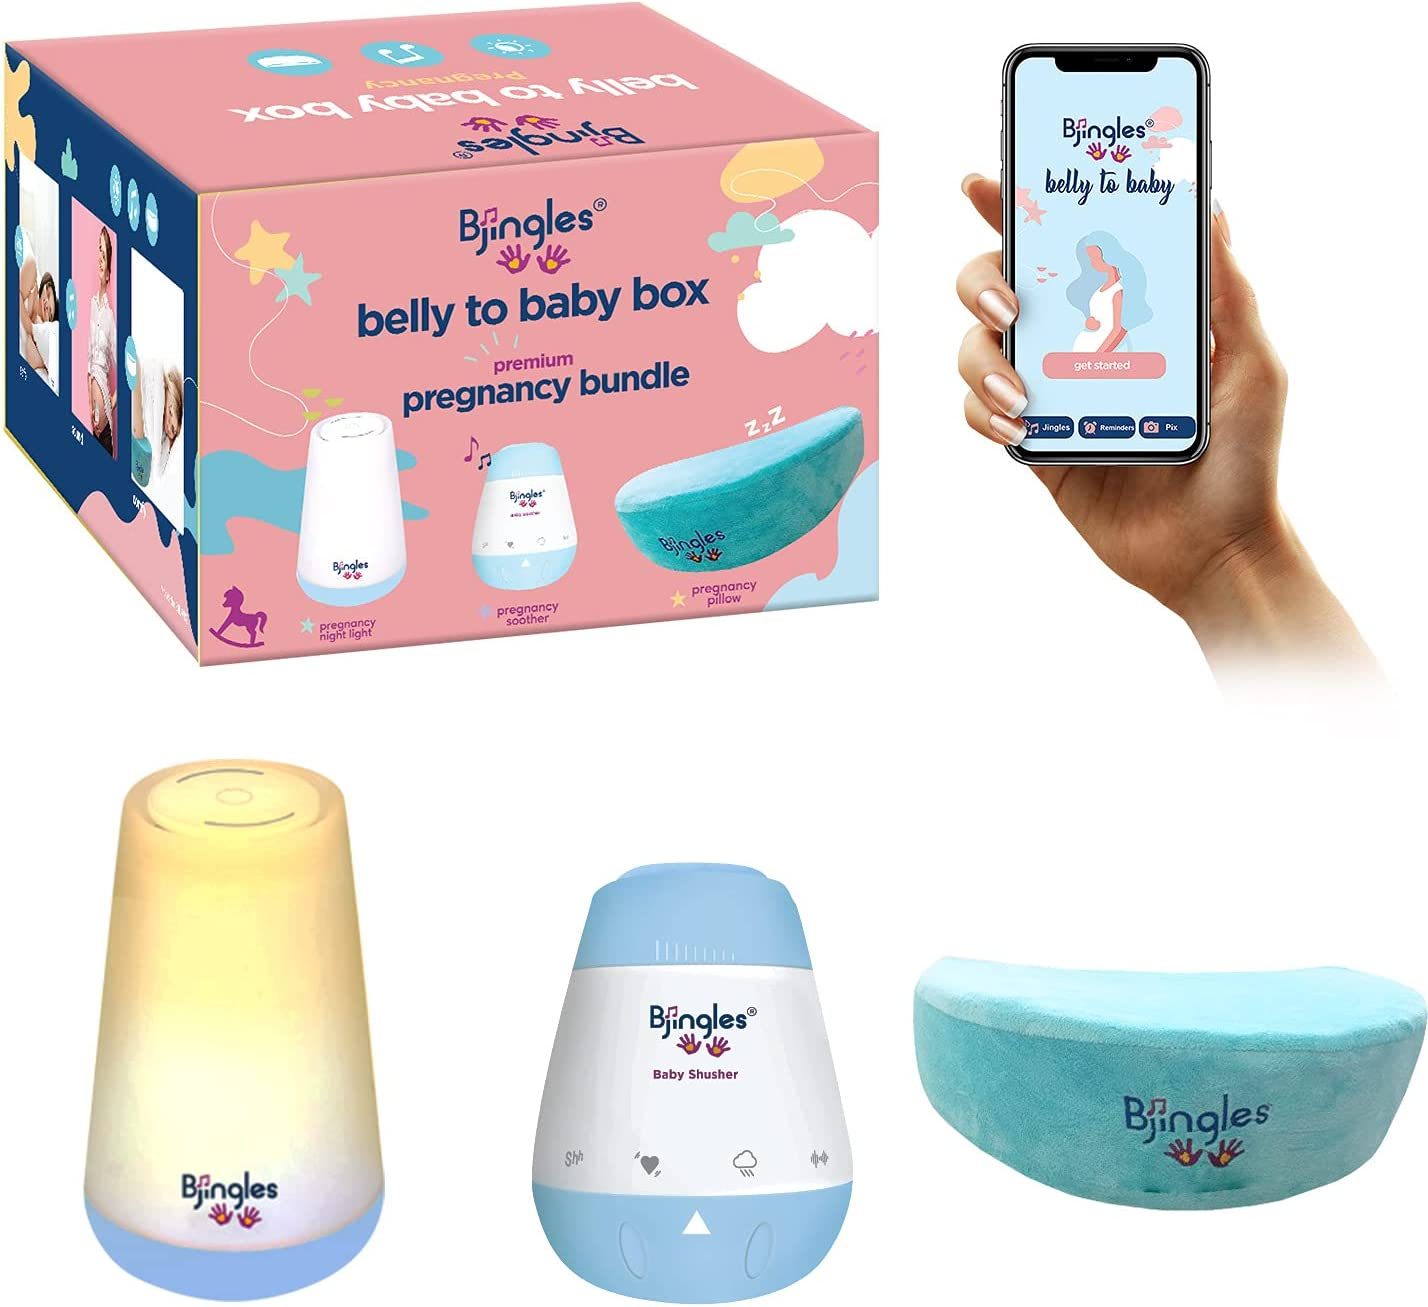 Bjingles Pregnancy Sleep Bundle: Incl. Pregnancy Wedge Pillow f/ Belly Support, a Night Light f/ Restful Sleep, & Music Soother to Enjoy with Unborn. Incl. a Travel Bag to Carry Sleep Items on The go